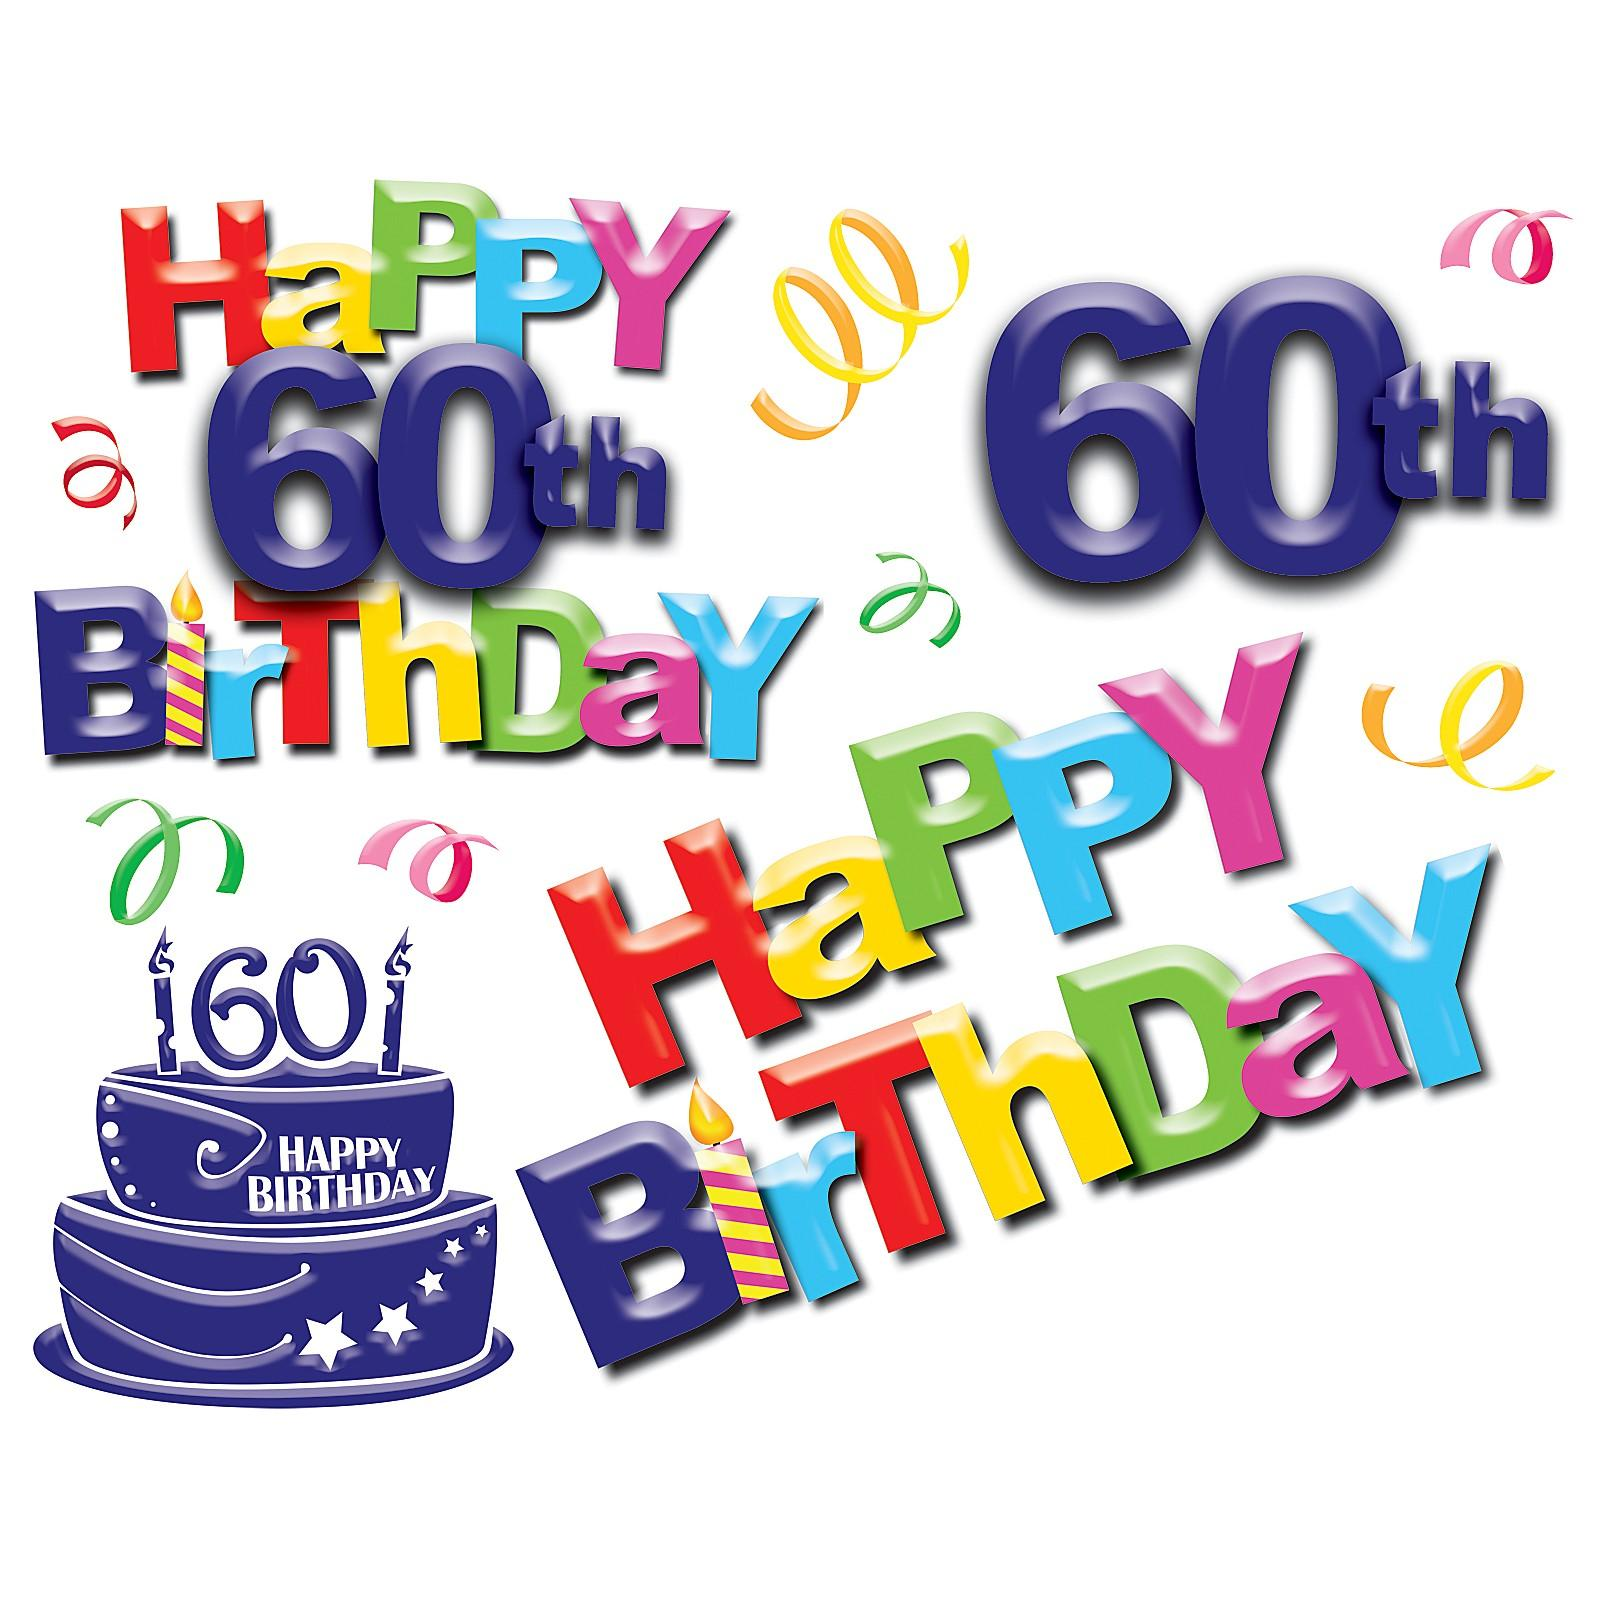 Quotes 60Th Birthday 100 60Th Birthday Wishes  Special Quotes Messages Saying For A